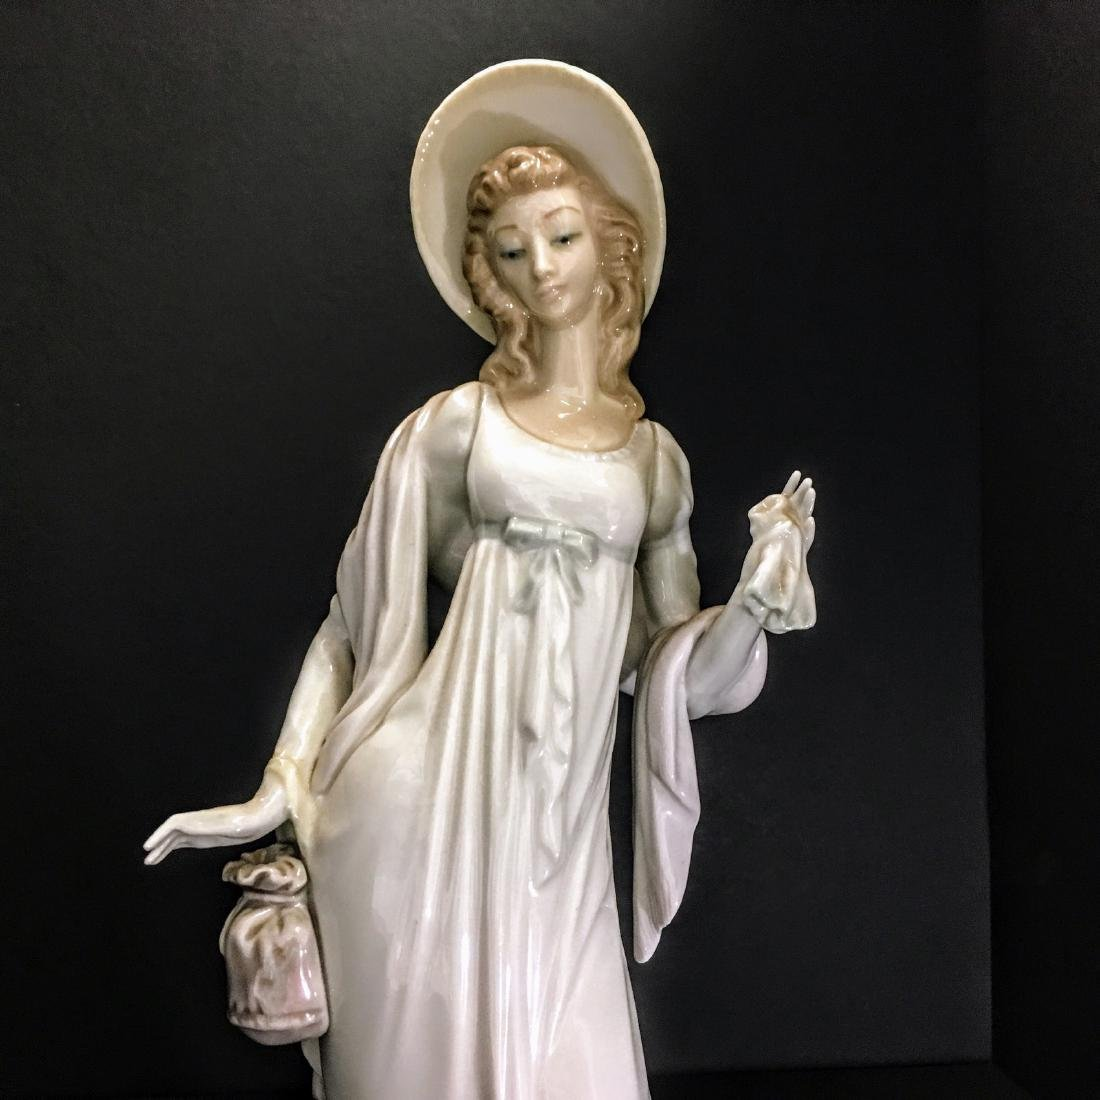 Lladro Figurine - Girl with hat and purse. - 5